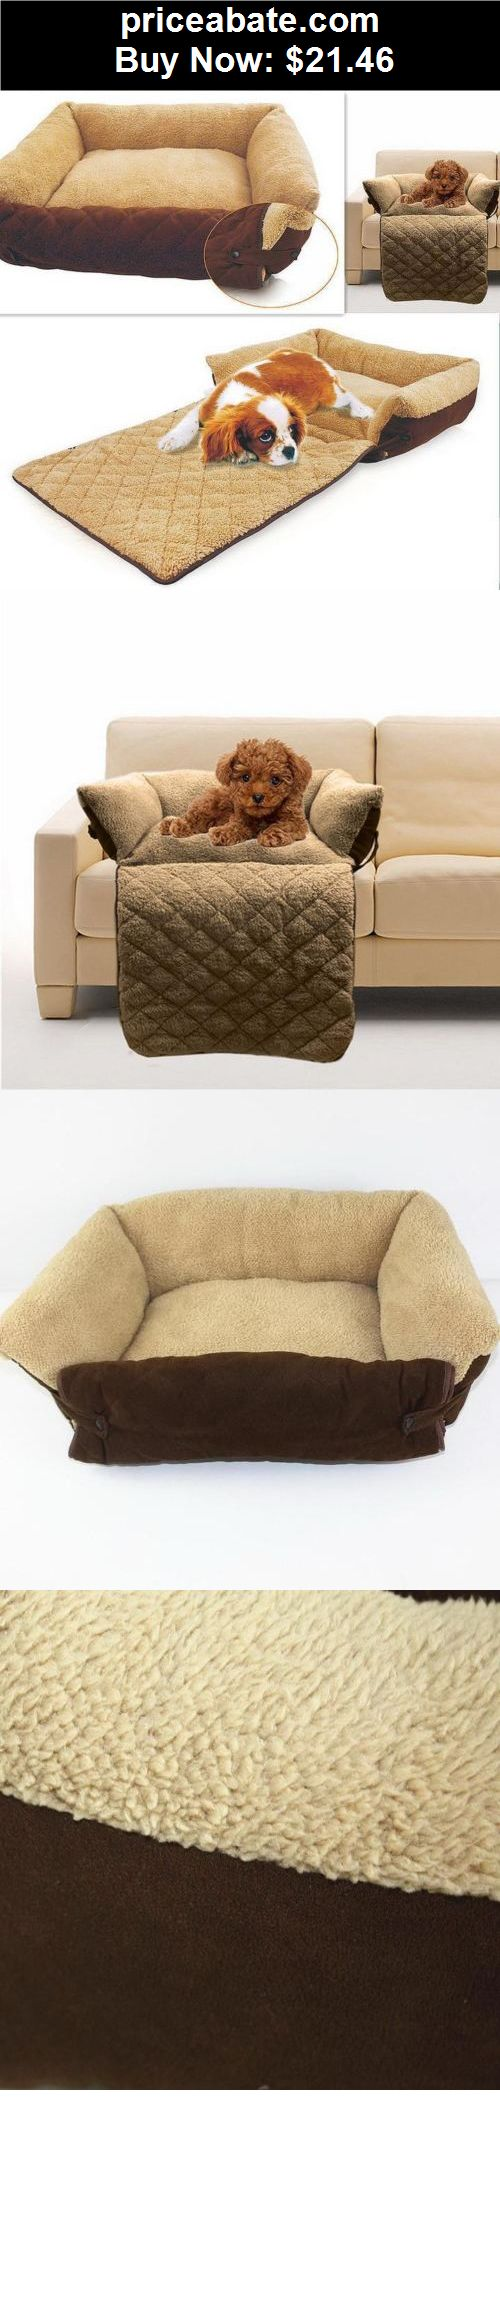 Animals-Dog: Dog/Cat Bed Soft Warm Pet Cushion Puppy Sofa Couch Mat Kennel Pad Furniture - BUY IT NOW ONLY $21.46